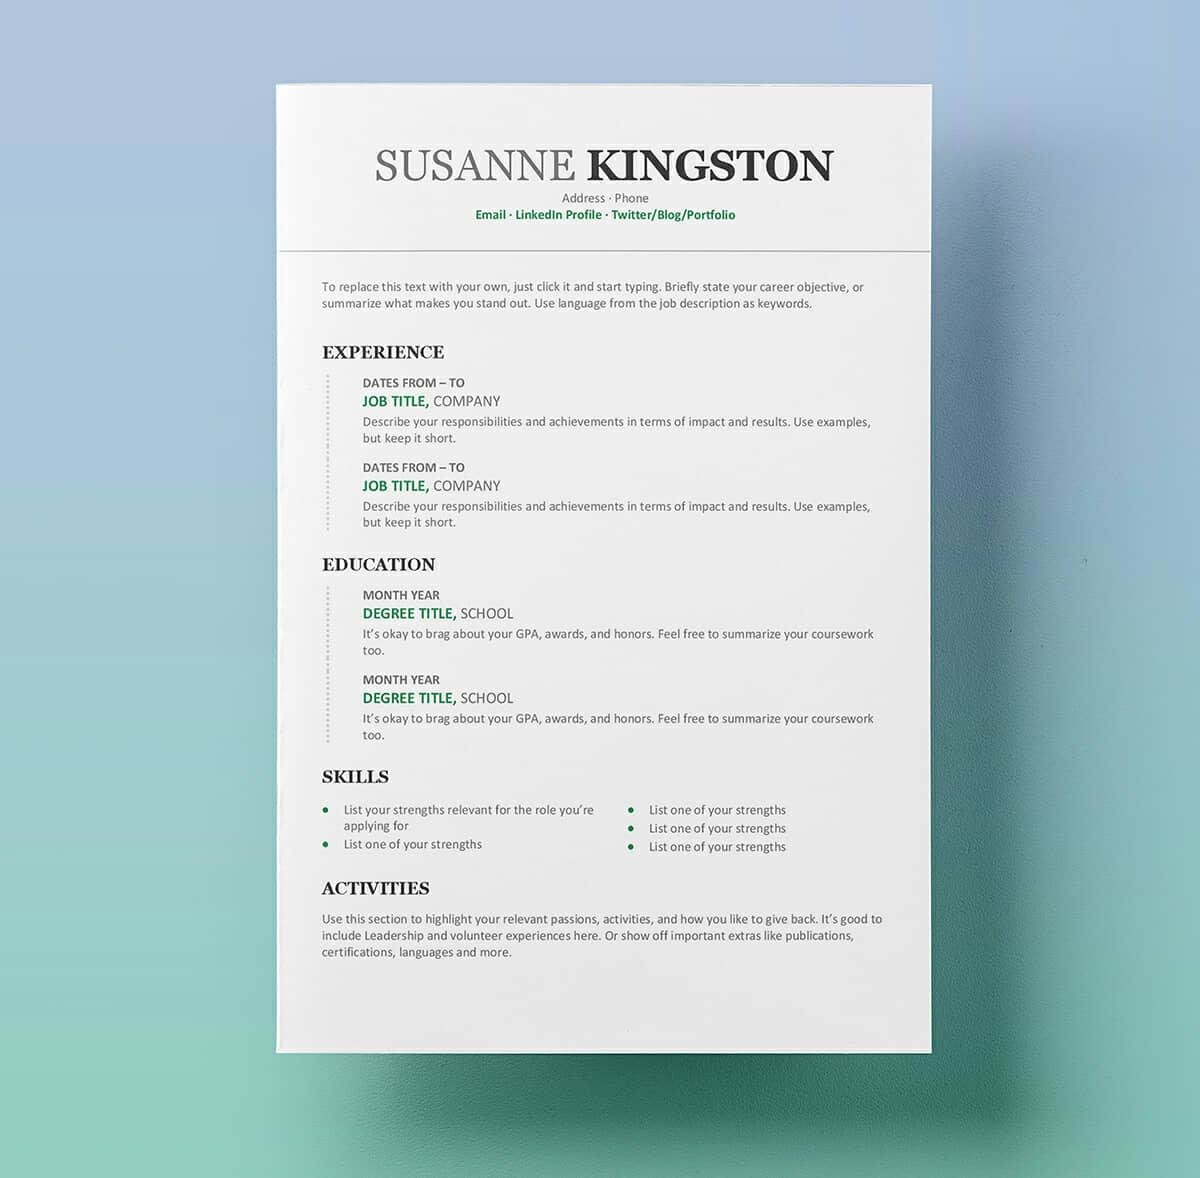 resume templates for microsoft word free in format engineering project manager examples Resume Free Resume Templates In Word Format